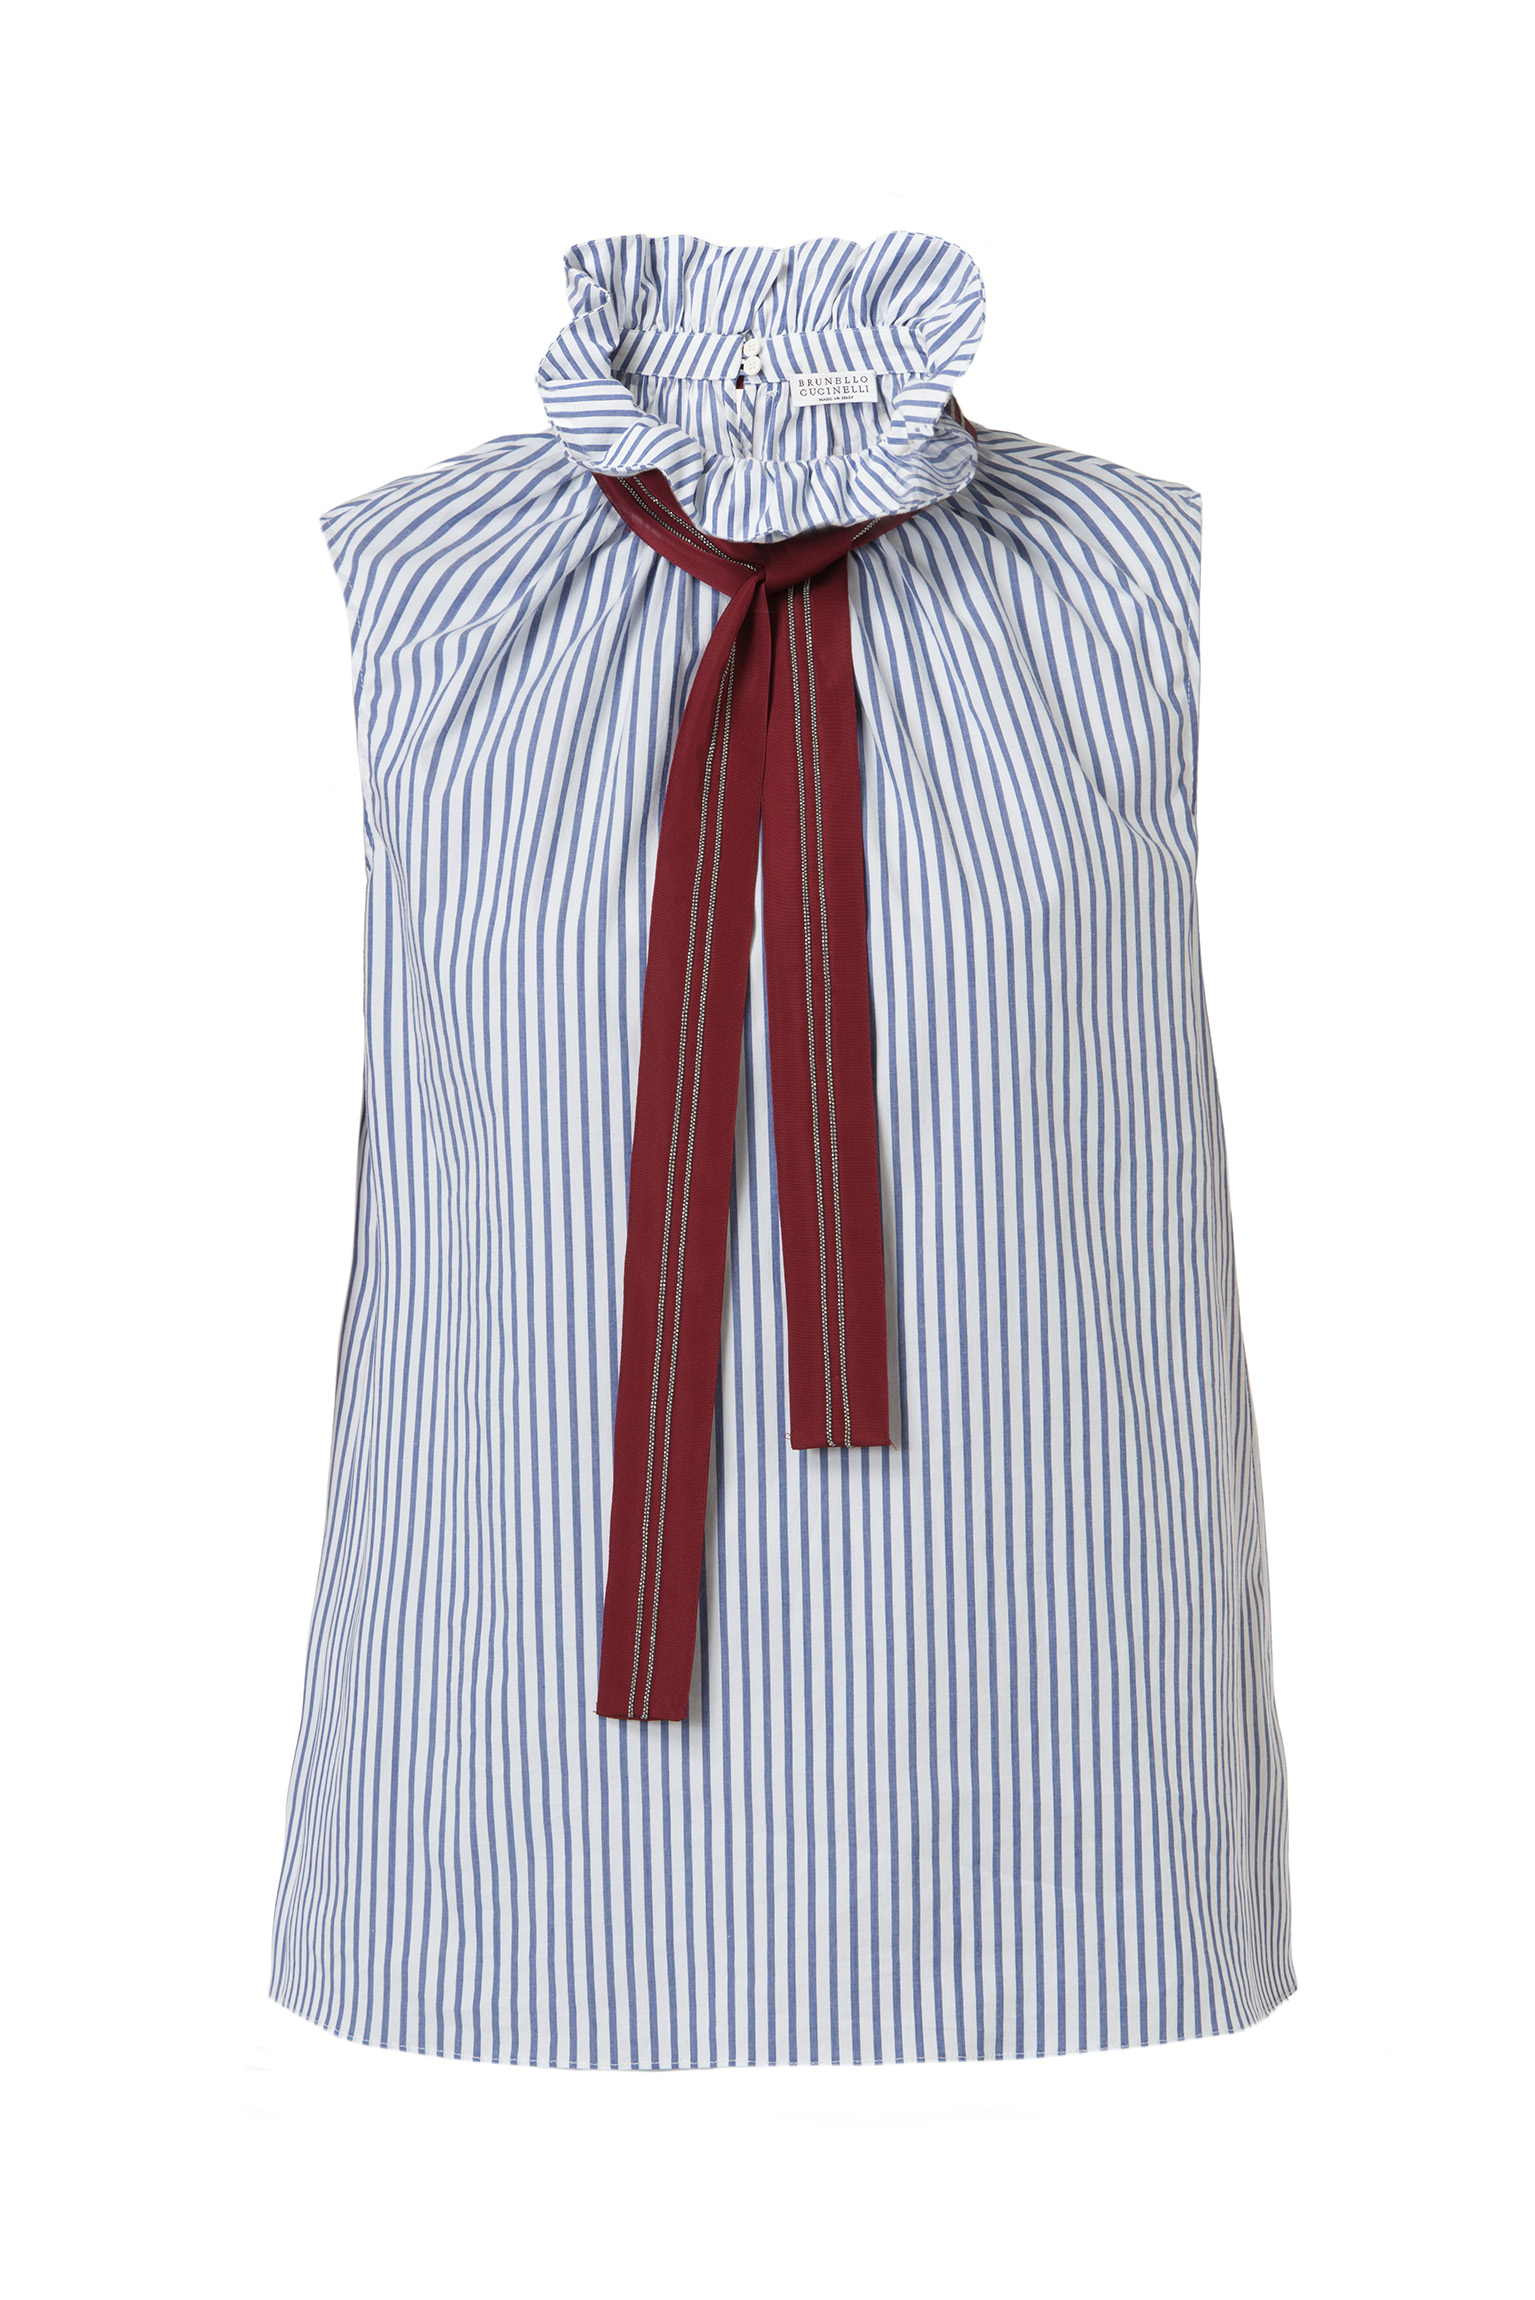 Ruffle collar top in poplin cotton with a grosgrain tie by Brunello Cucinelli